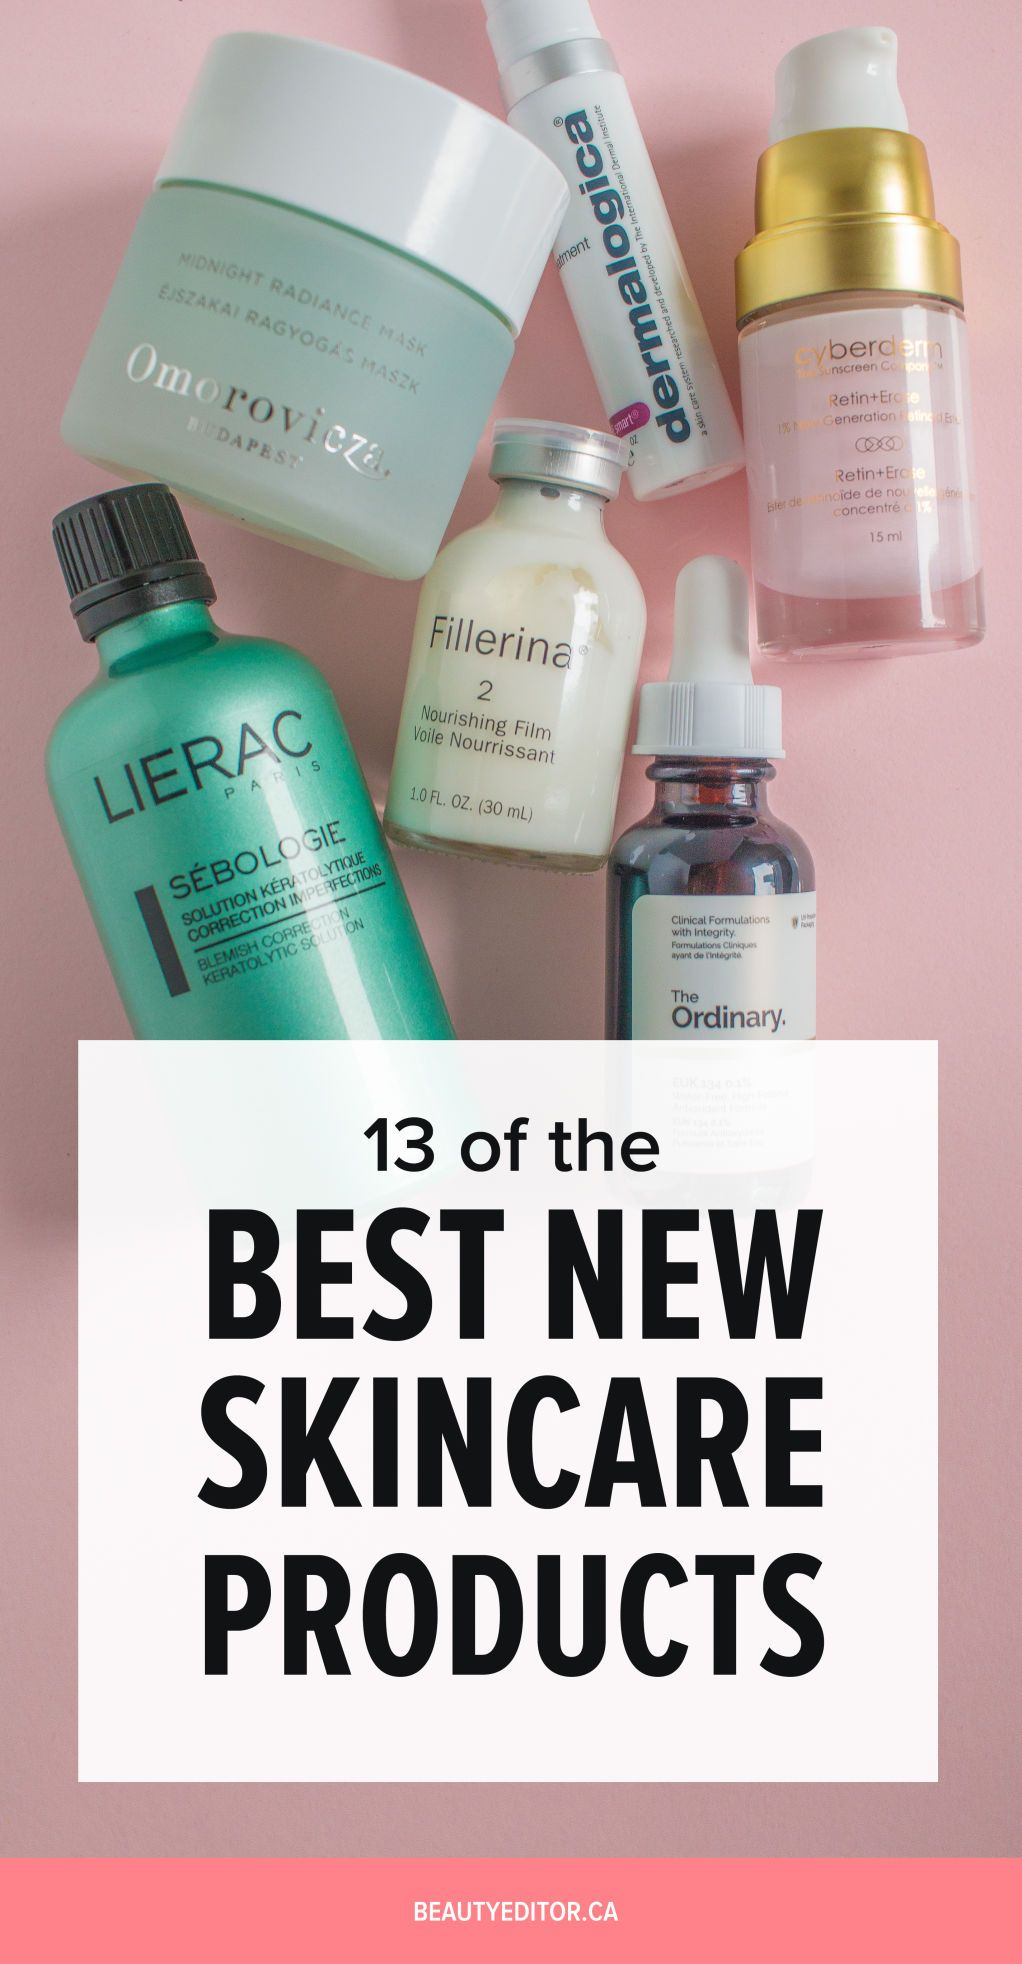 From Cyberderm To Fillerina 13 Of The Best New Skincare Products The Skincare Edit Sensitive Skin Care Skin Care Organic Skin Care